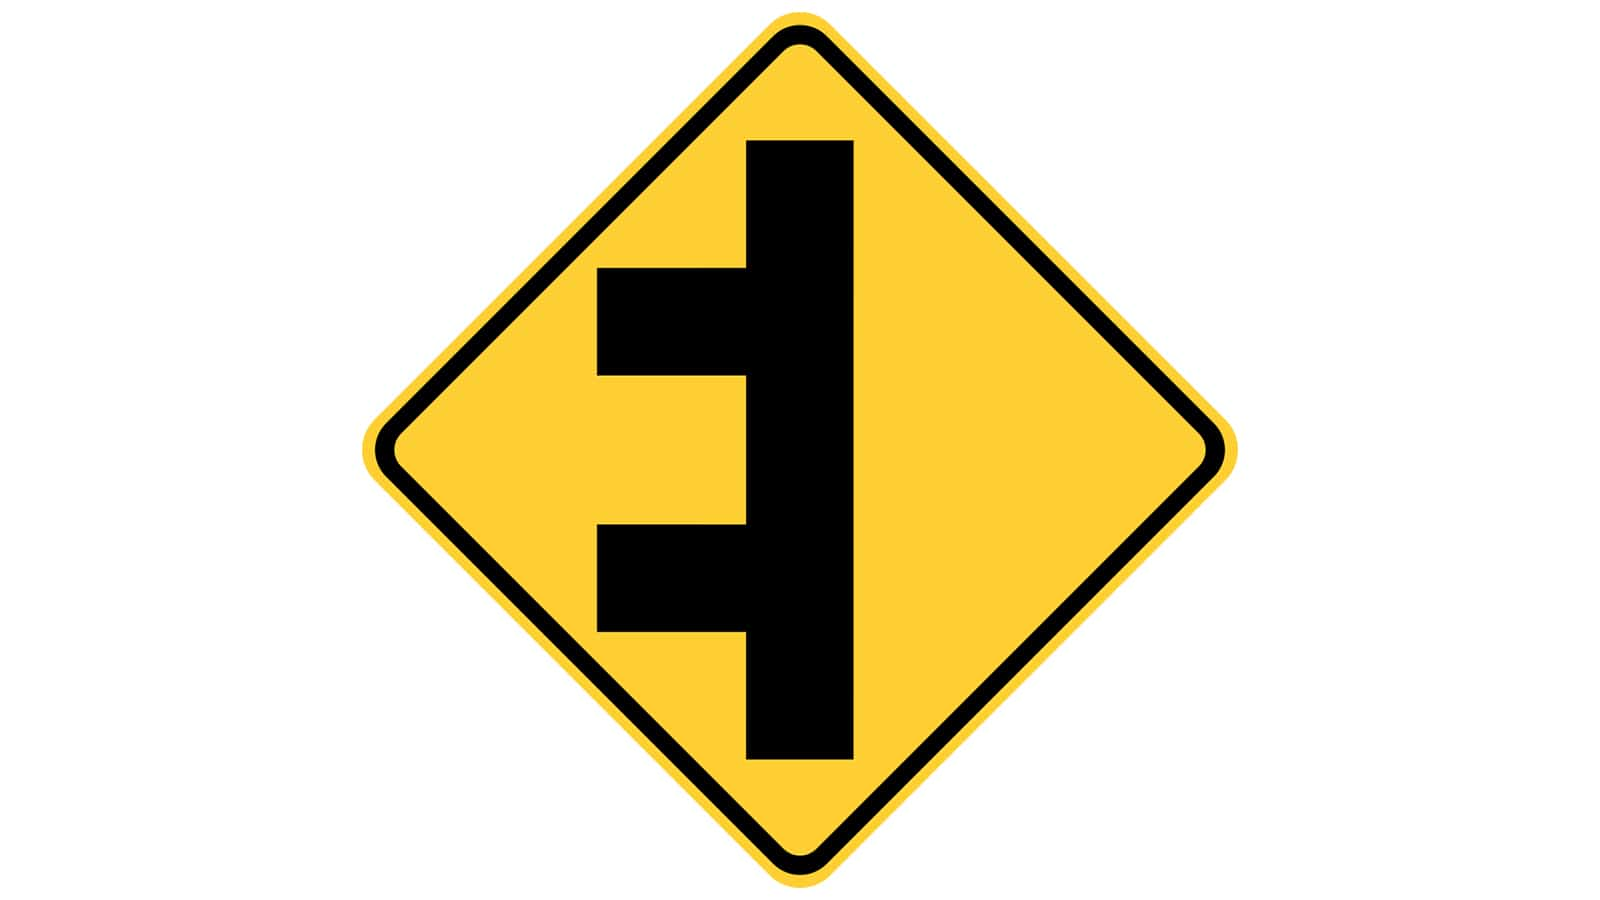 Warning sign Double-Side Roads